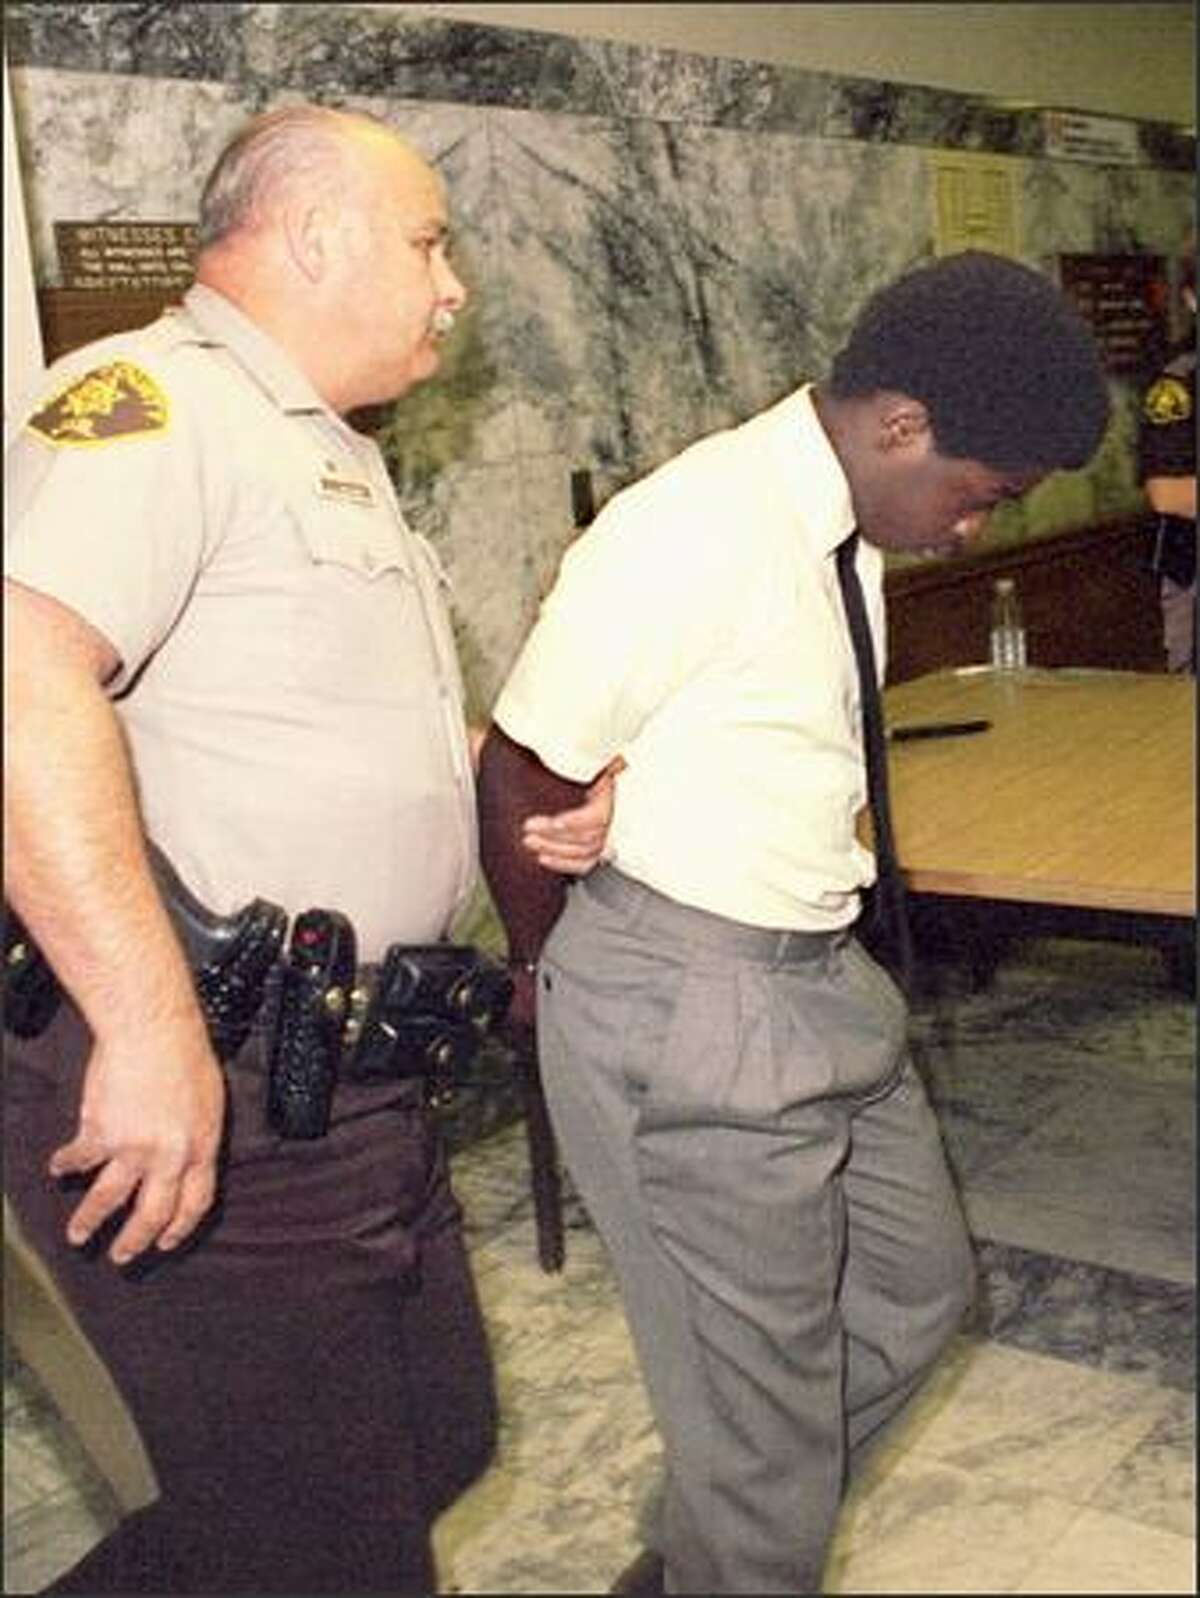 Willard Jimerson being escorted out of the King County Courthouse as a 13-year-old murder defendant.